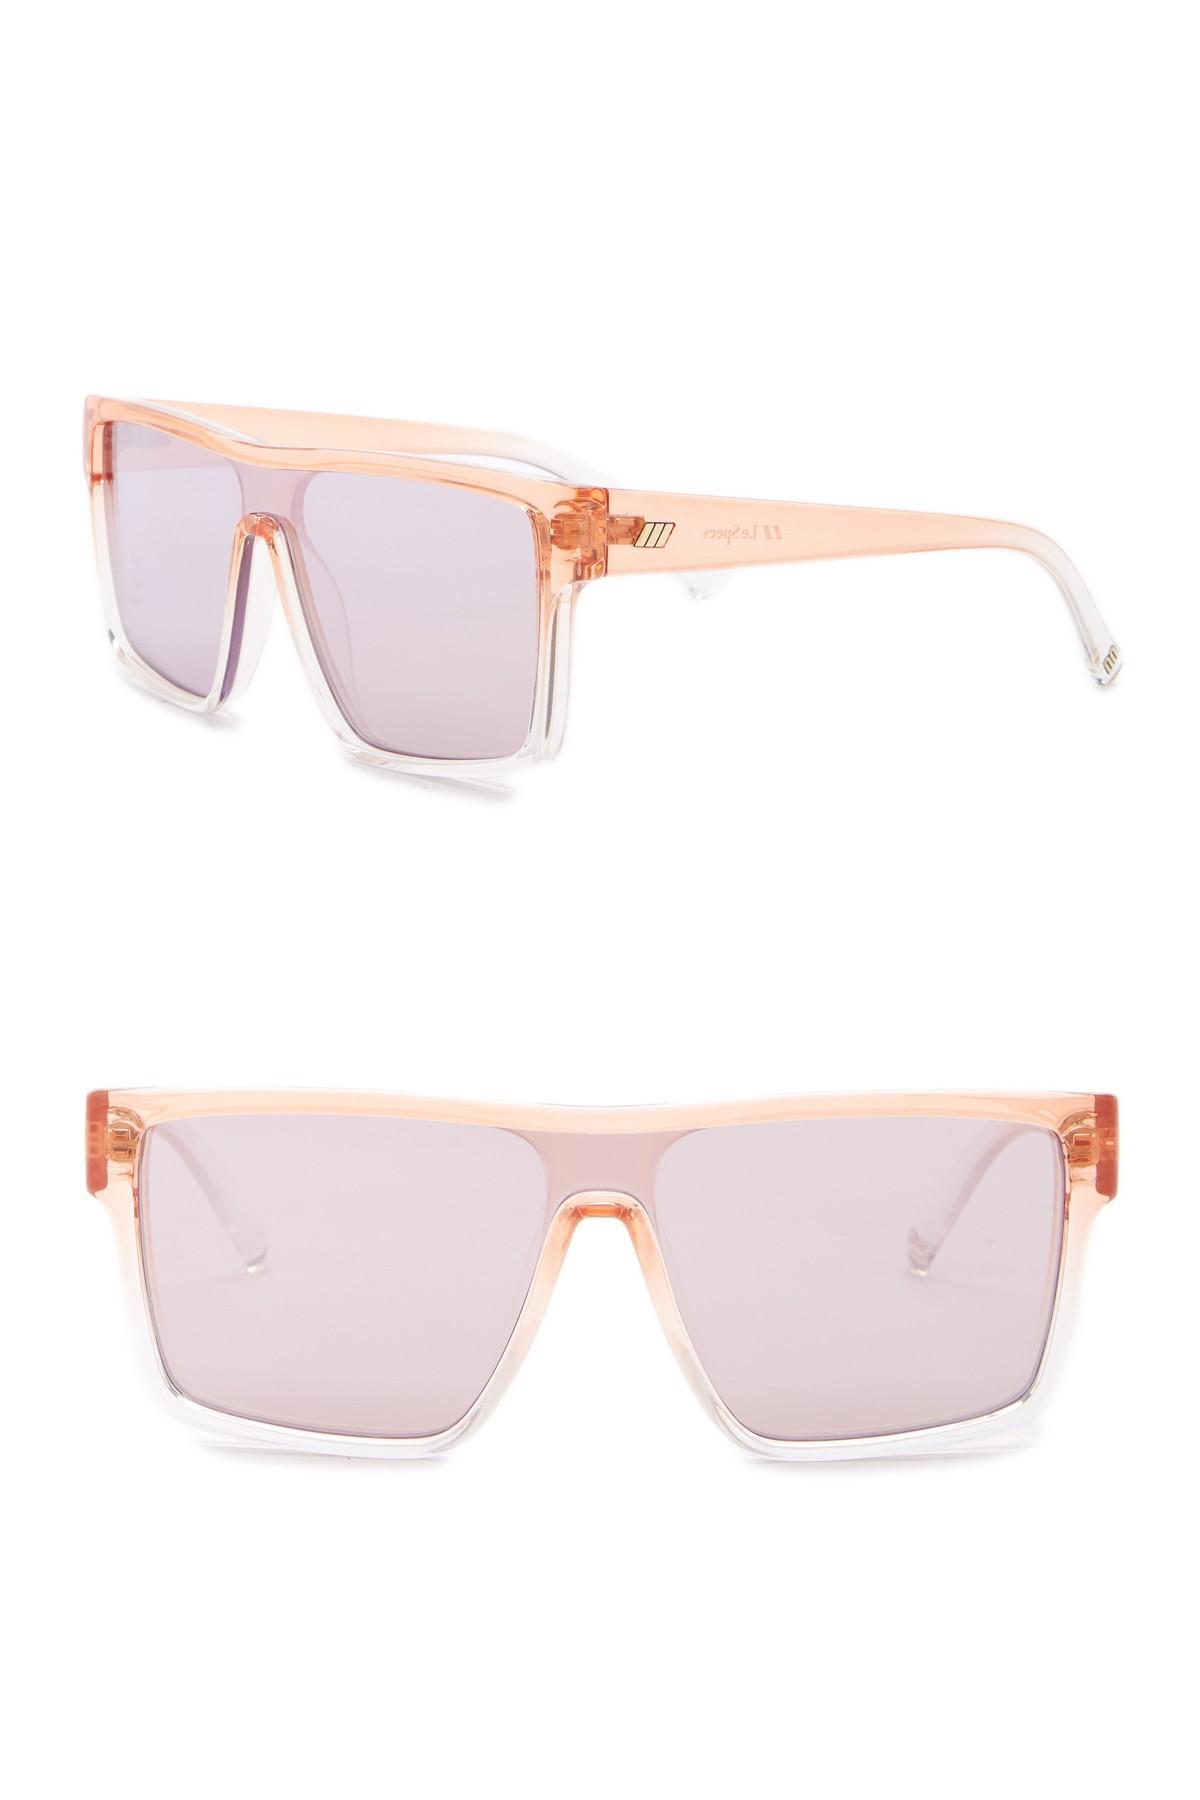 a8292bfb002 Lyst - Le Specs Moon Club 59mm Shield Sunglasses in Pink